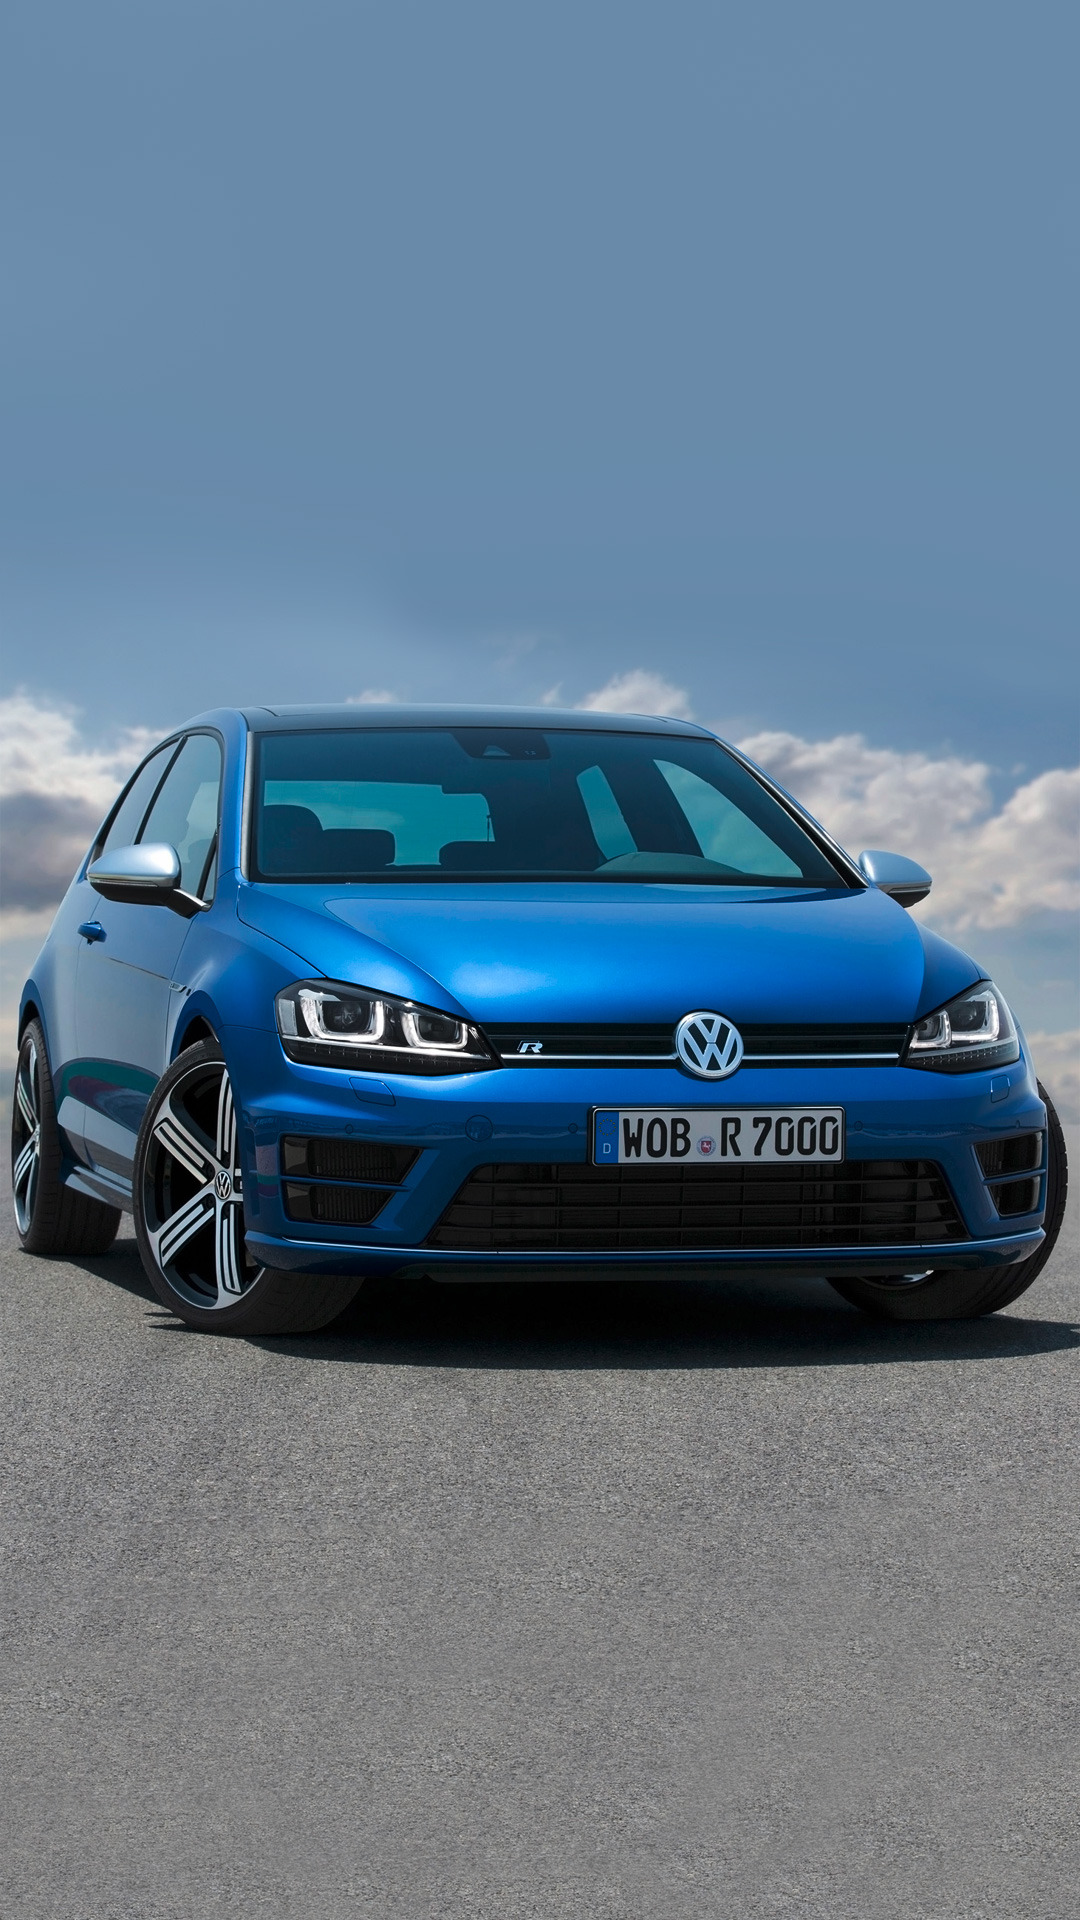 Volkswagen Golf 7 - Best htc one wallpapers, free and easy ...